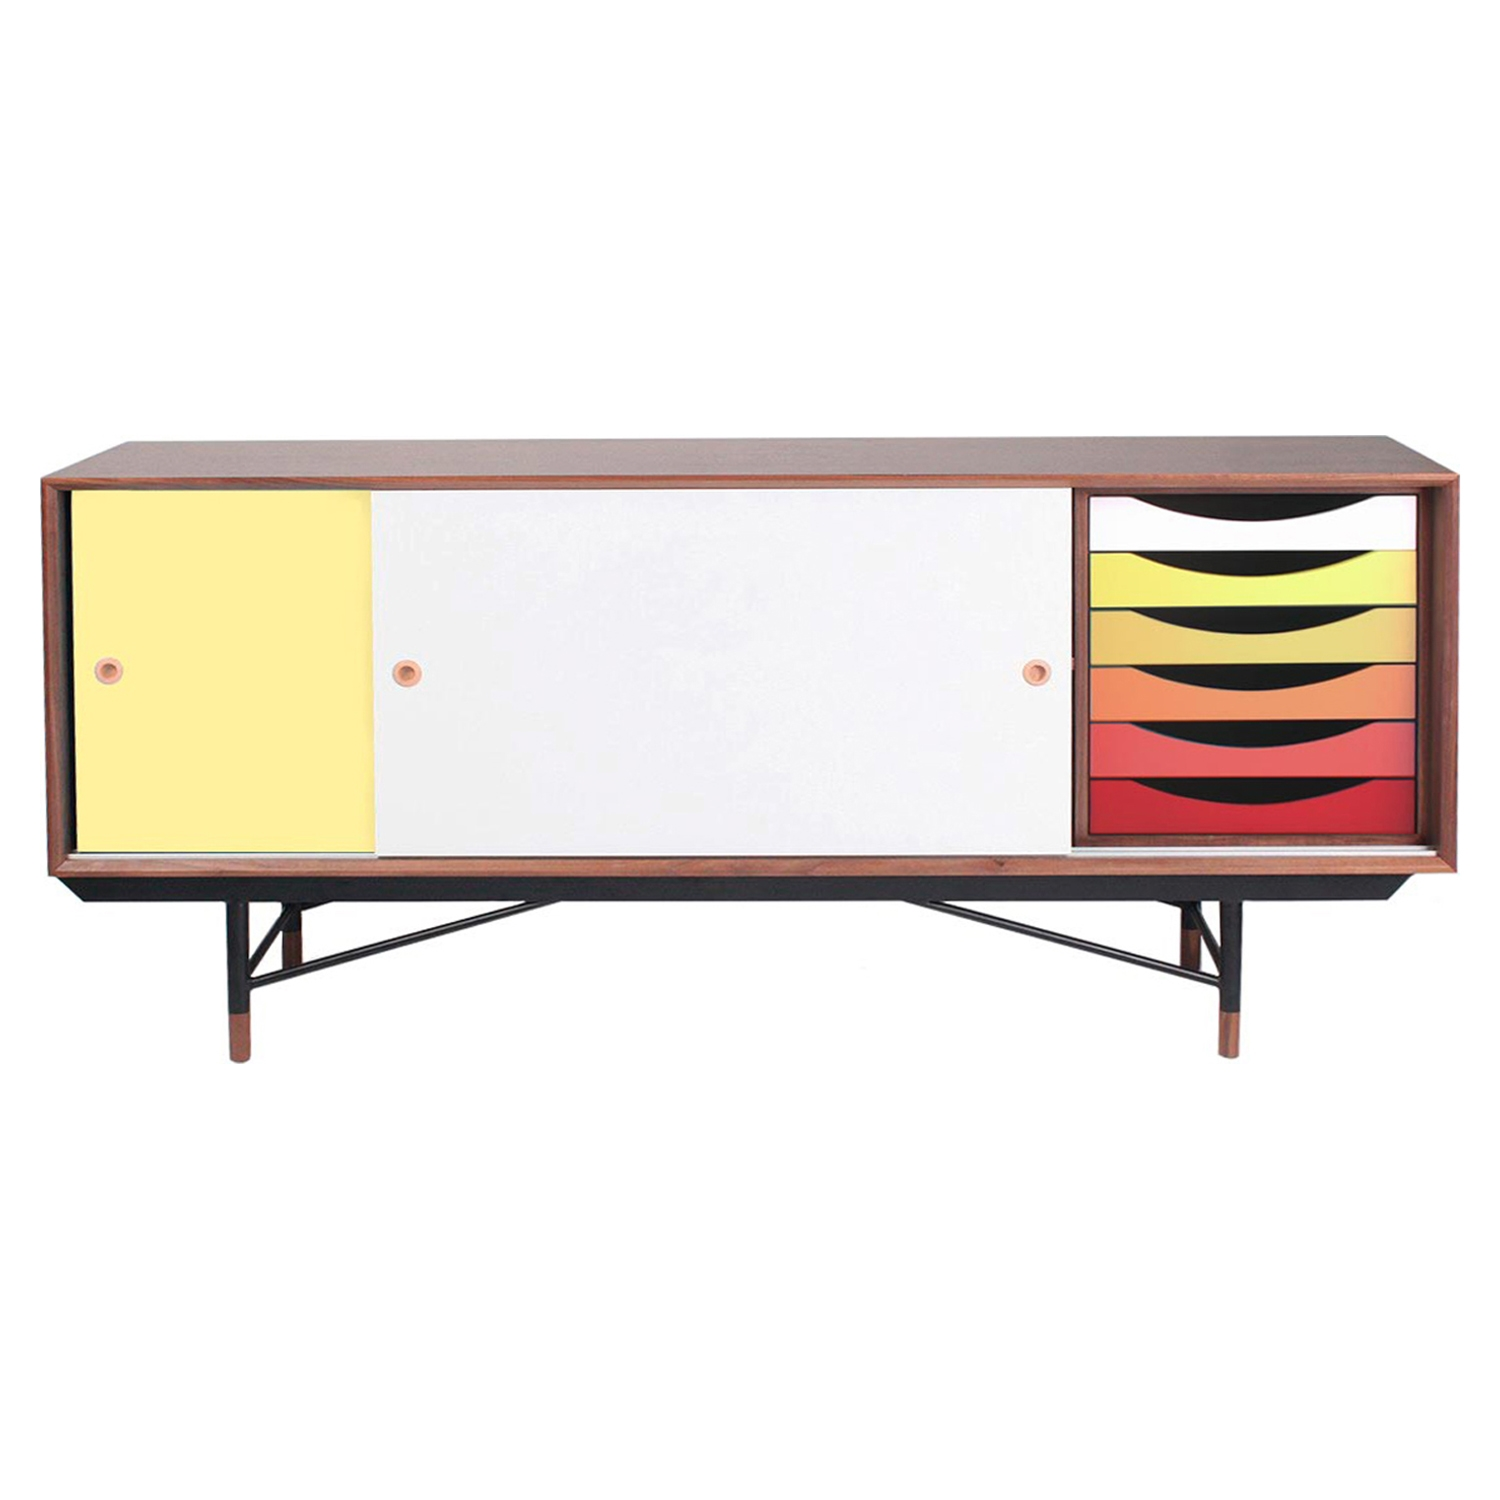 Soren Sideboard - Walnut and Yellow, Red - NYEK-445577